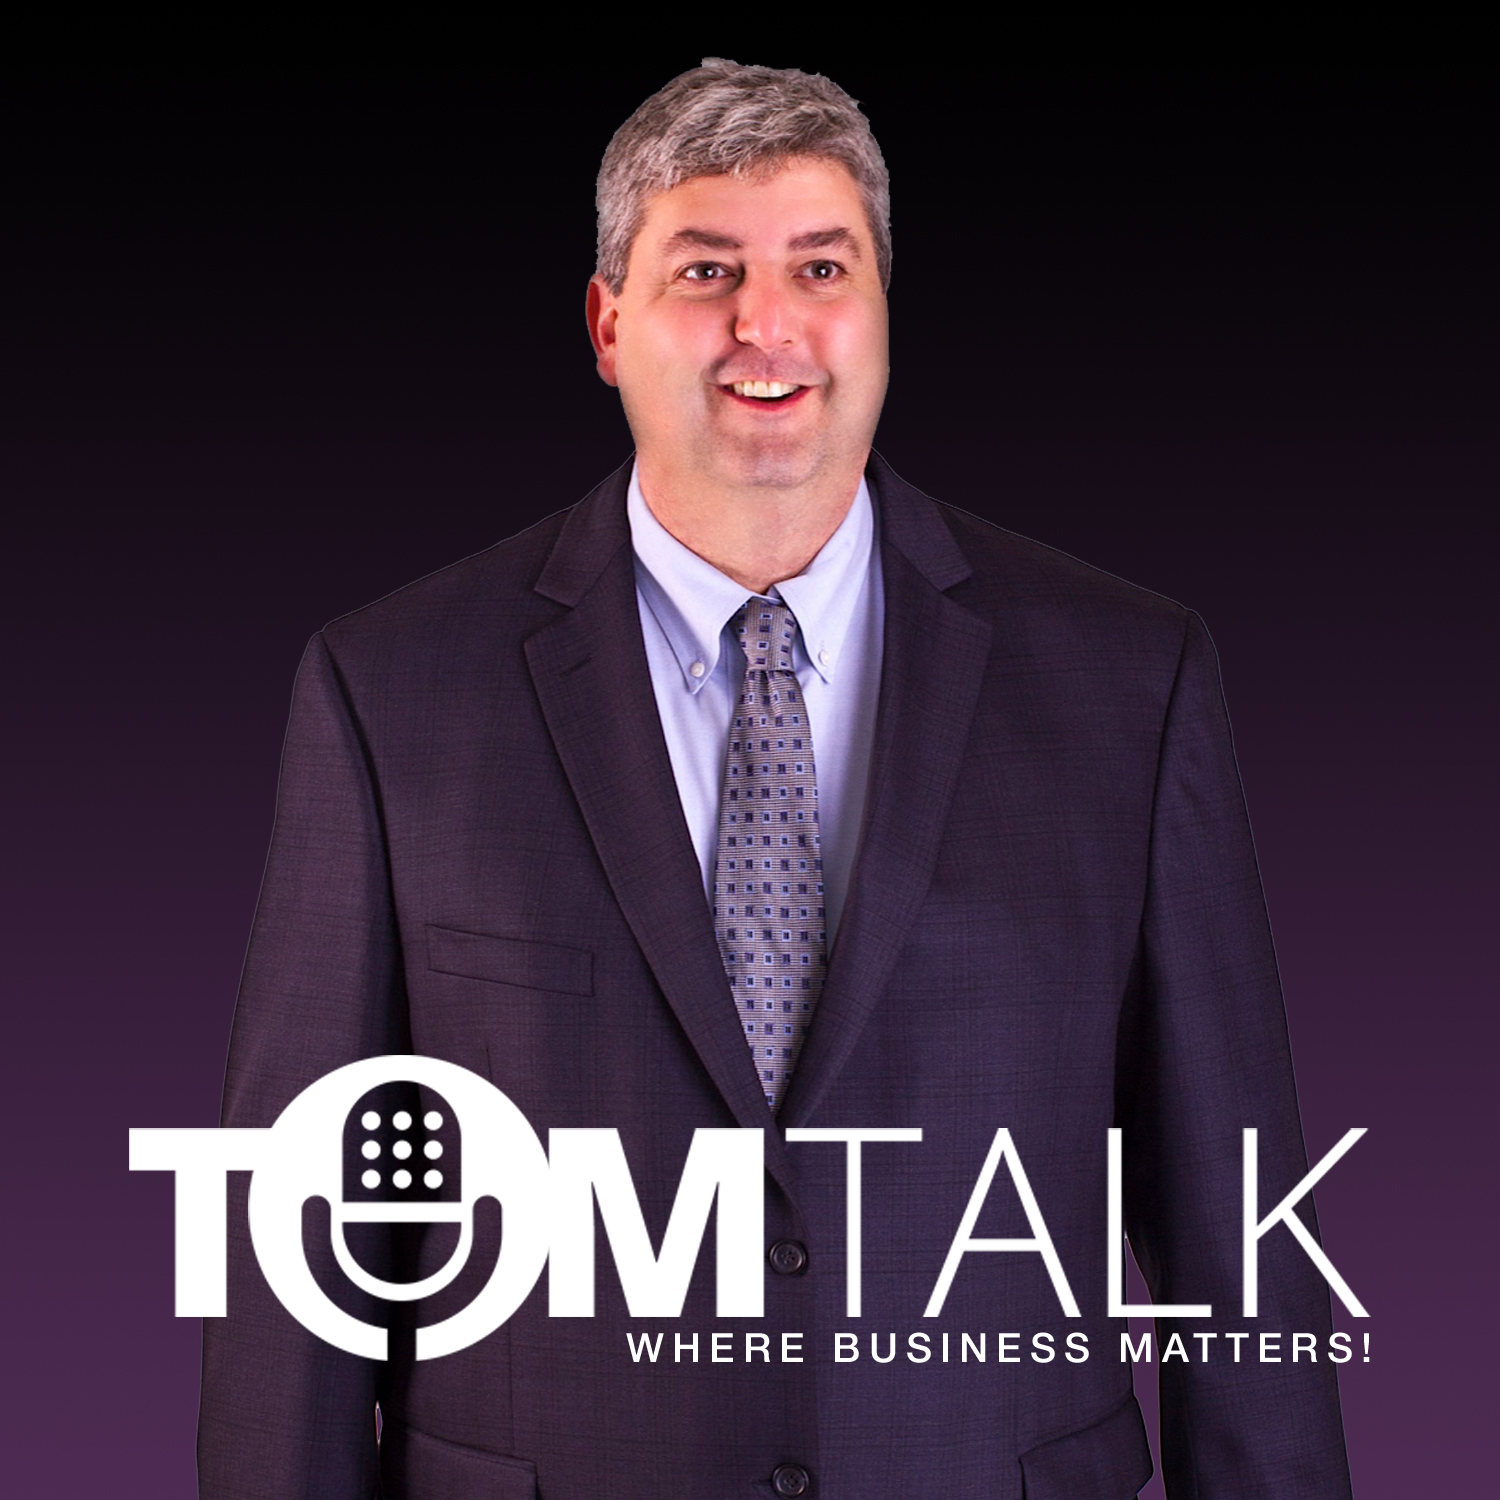 TomTalk - Sales Coaching by Tom Ricciuti